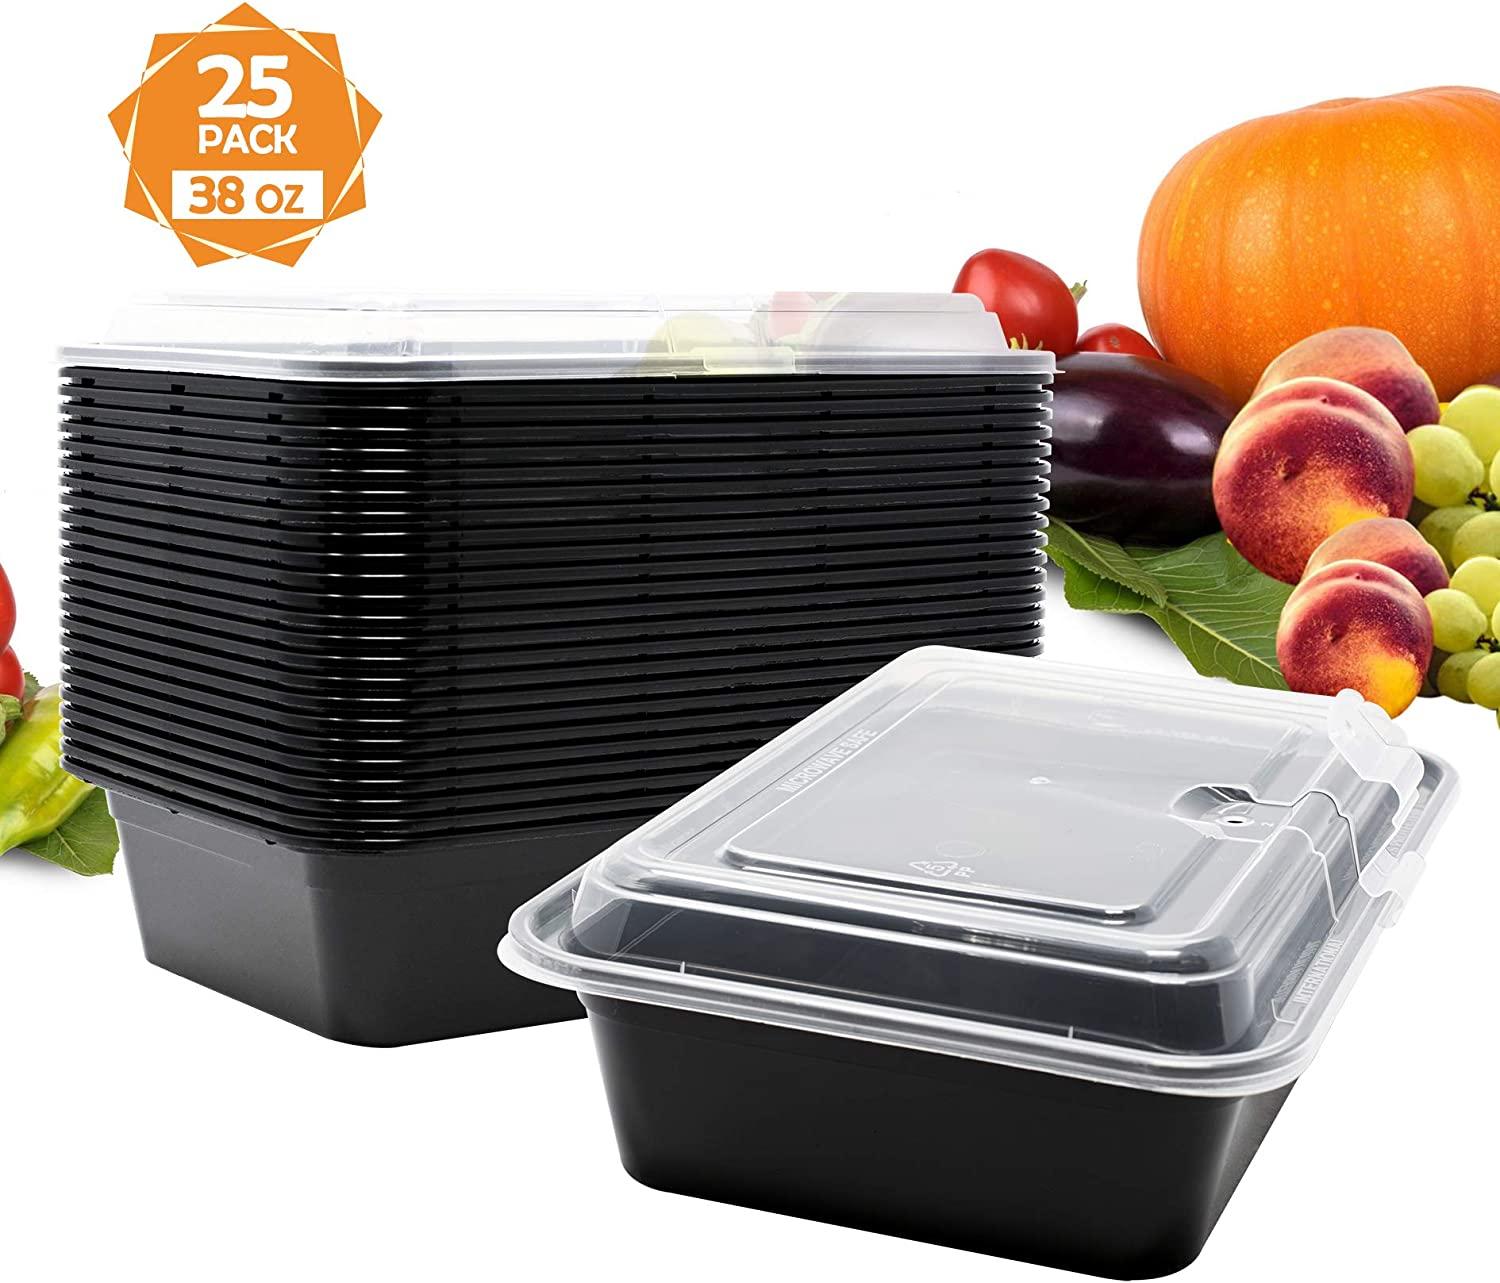 Whale Family, Meal Prep Containers - Reusable Plastic Containers with Vented Lids - Patent Protected Design - BPA-Free Food Bowls - Plastic Storage Containers - Microwave Safe (Black, 38oz, 25-Pack)